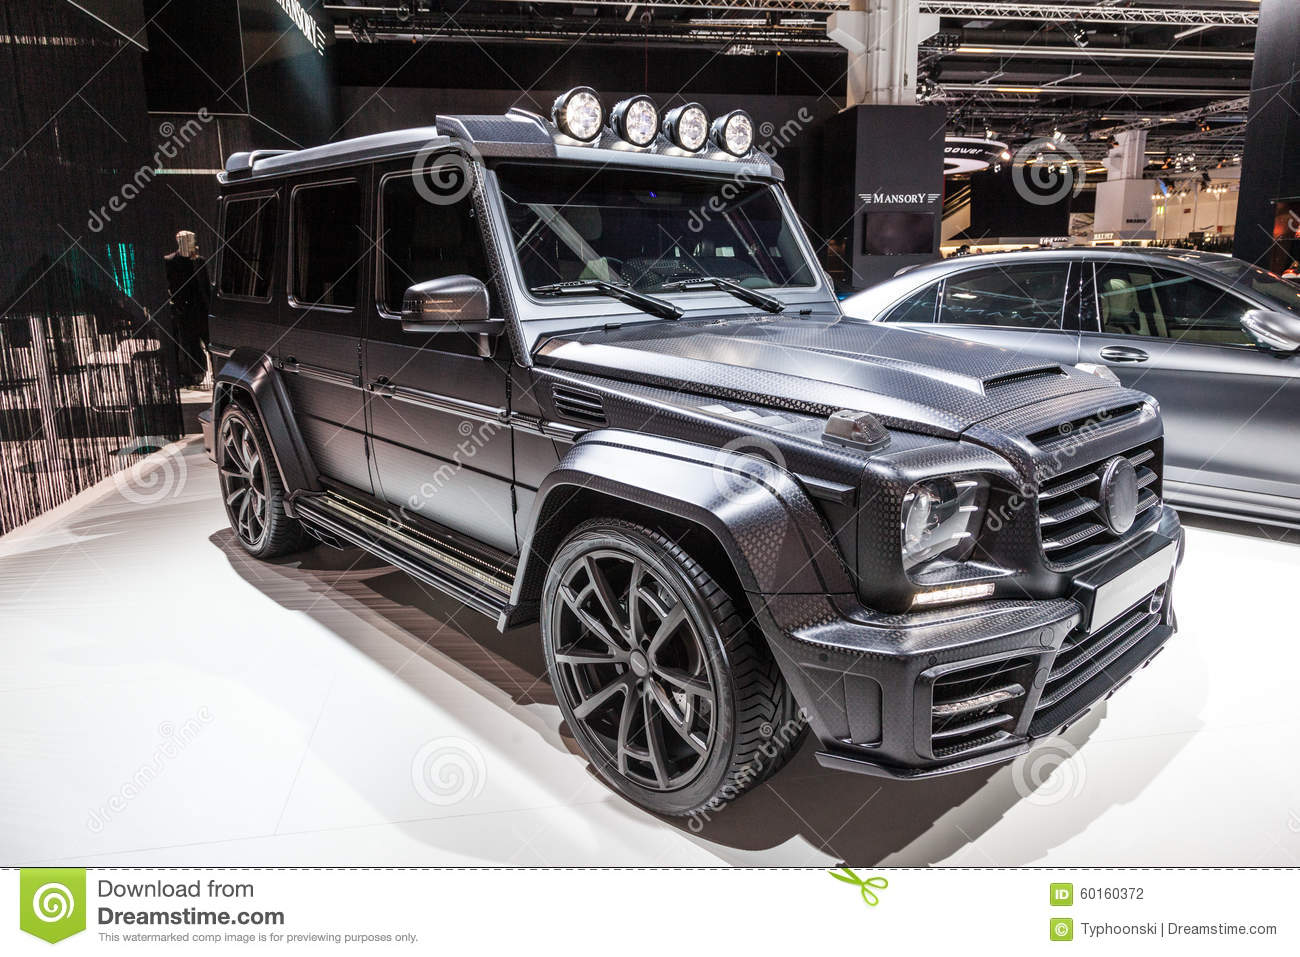 mansory mercedes benz g class at the iaa 2015 editorial. Black Bedroom Furniture Sets. Home Design Ideas